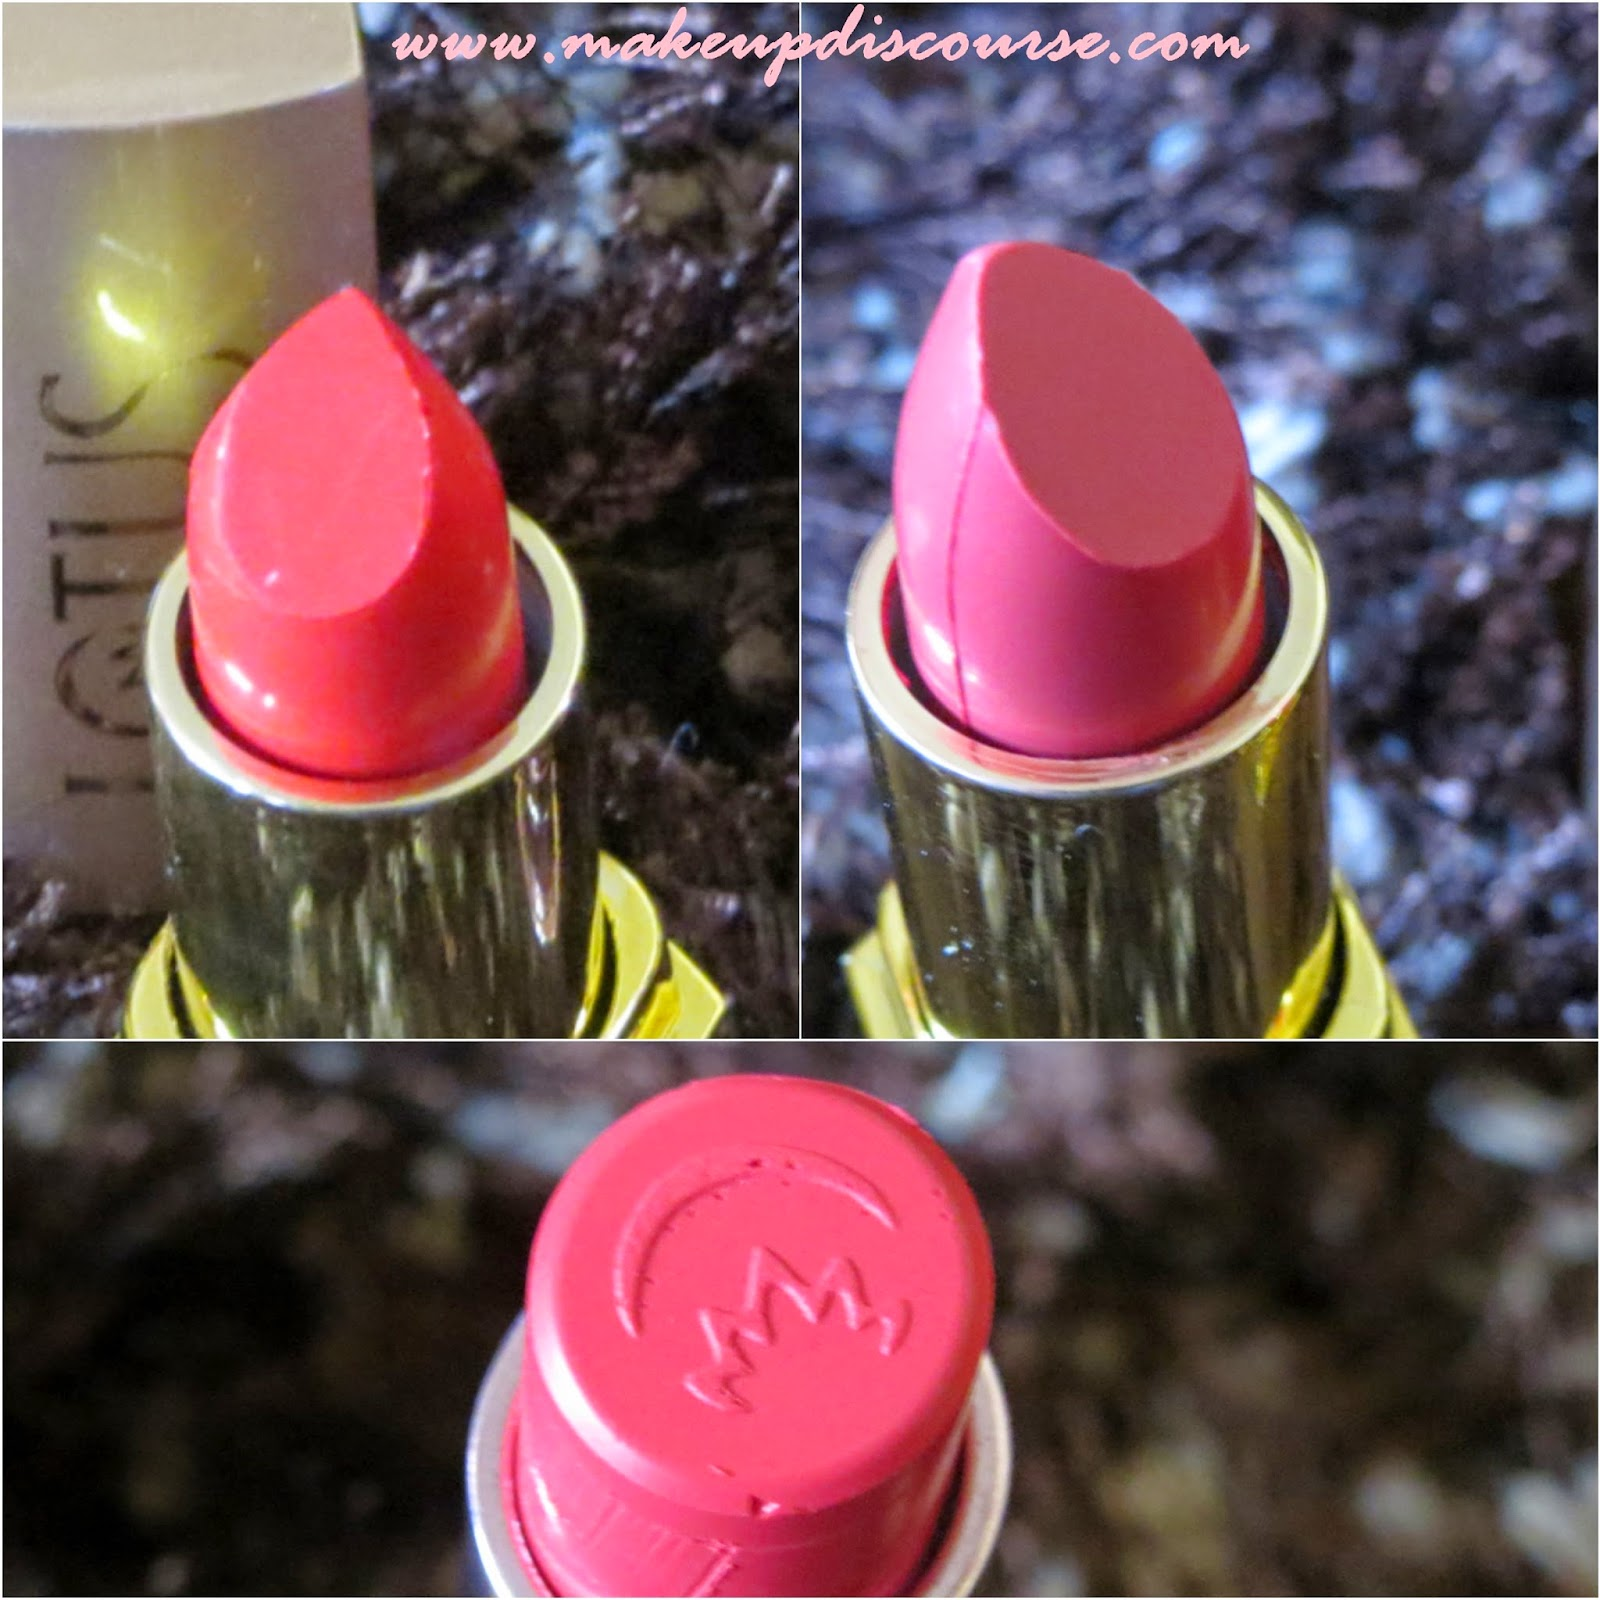 Lotus Herbals Pure Colors and Eco Stay Lipstick Carnation, Tangerine and Coral Candy